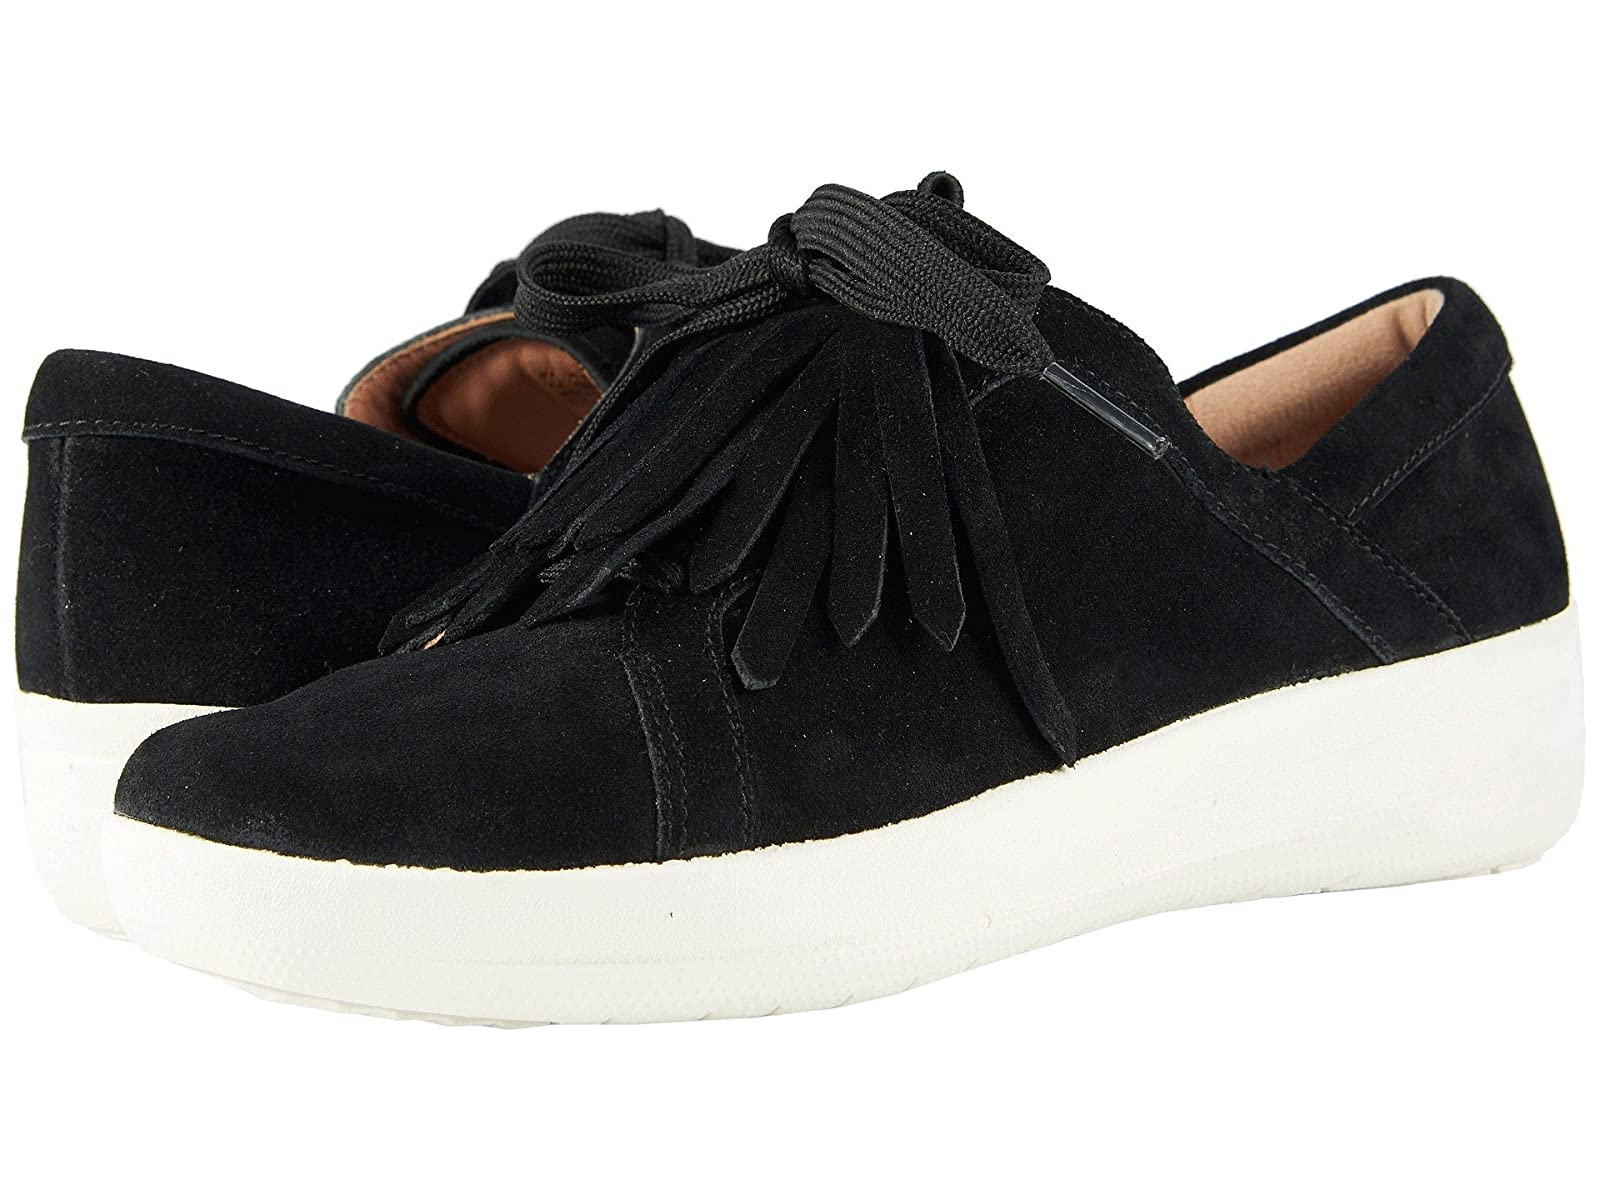 FitFlop F-Sporty II Lace-Up Fringe SneakersCheap and distinctive eye-catching shoes